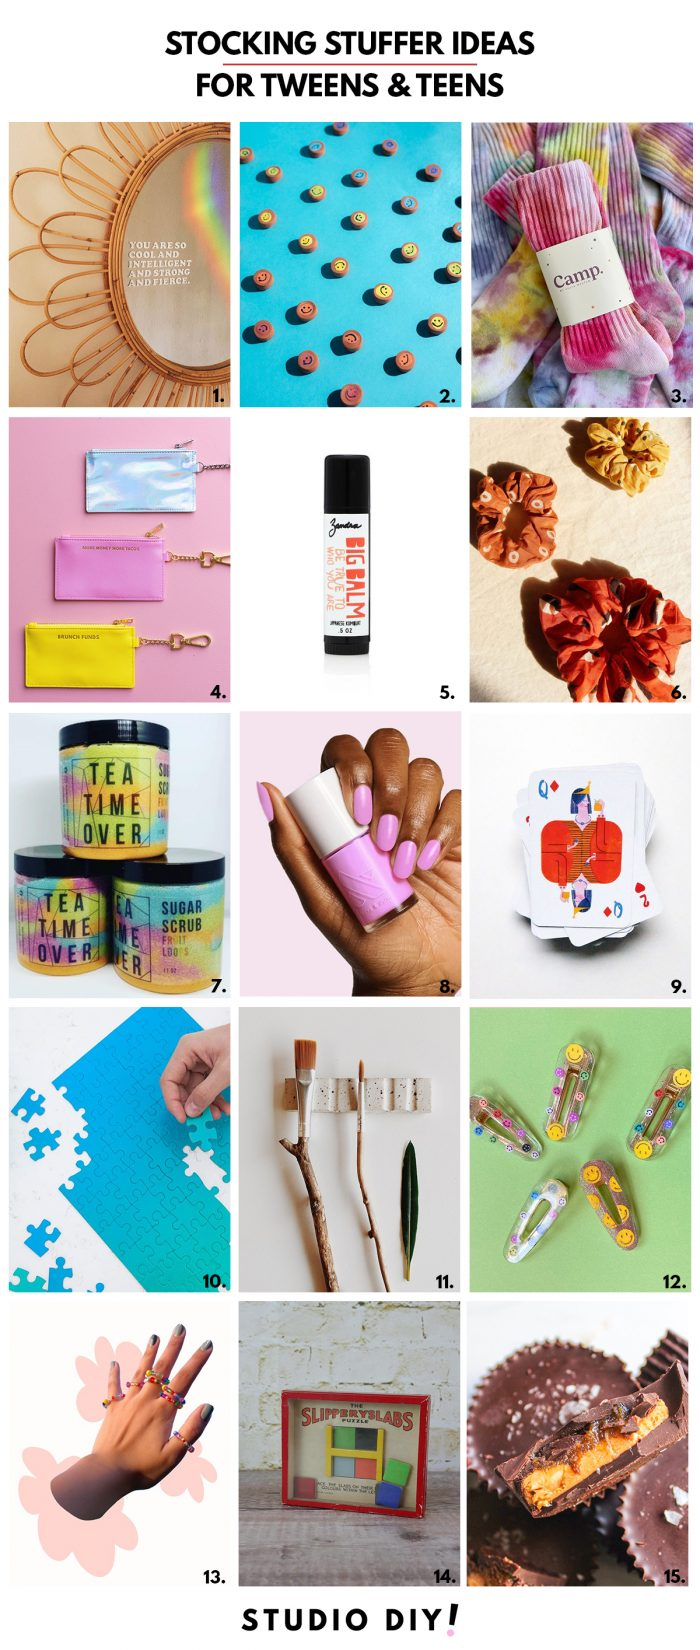 Stocking Stuffers for Tweens and Teens